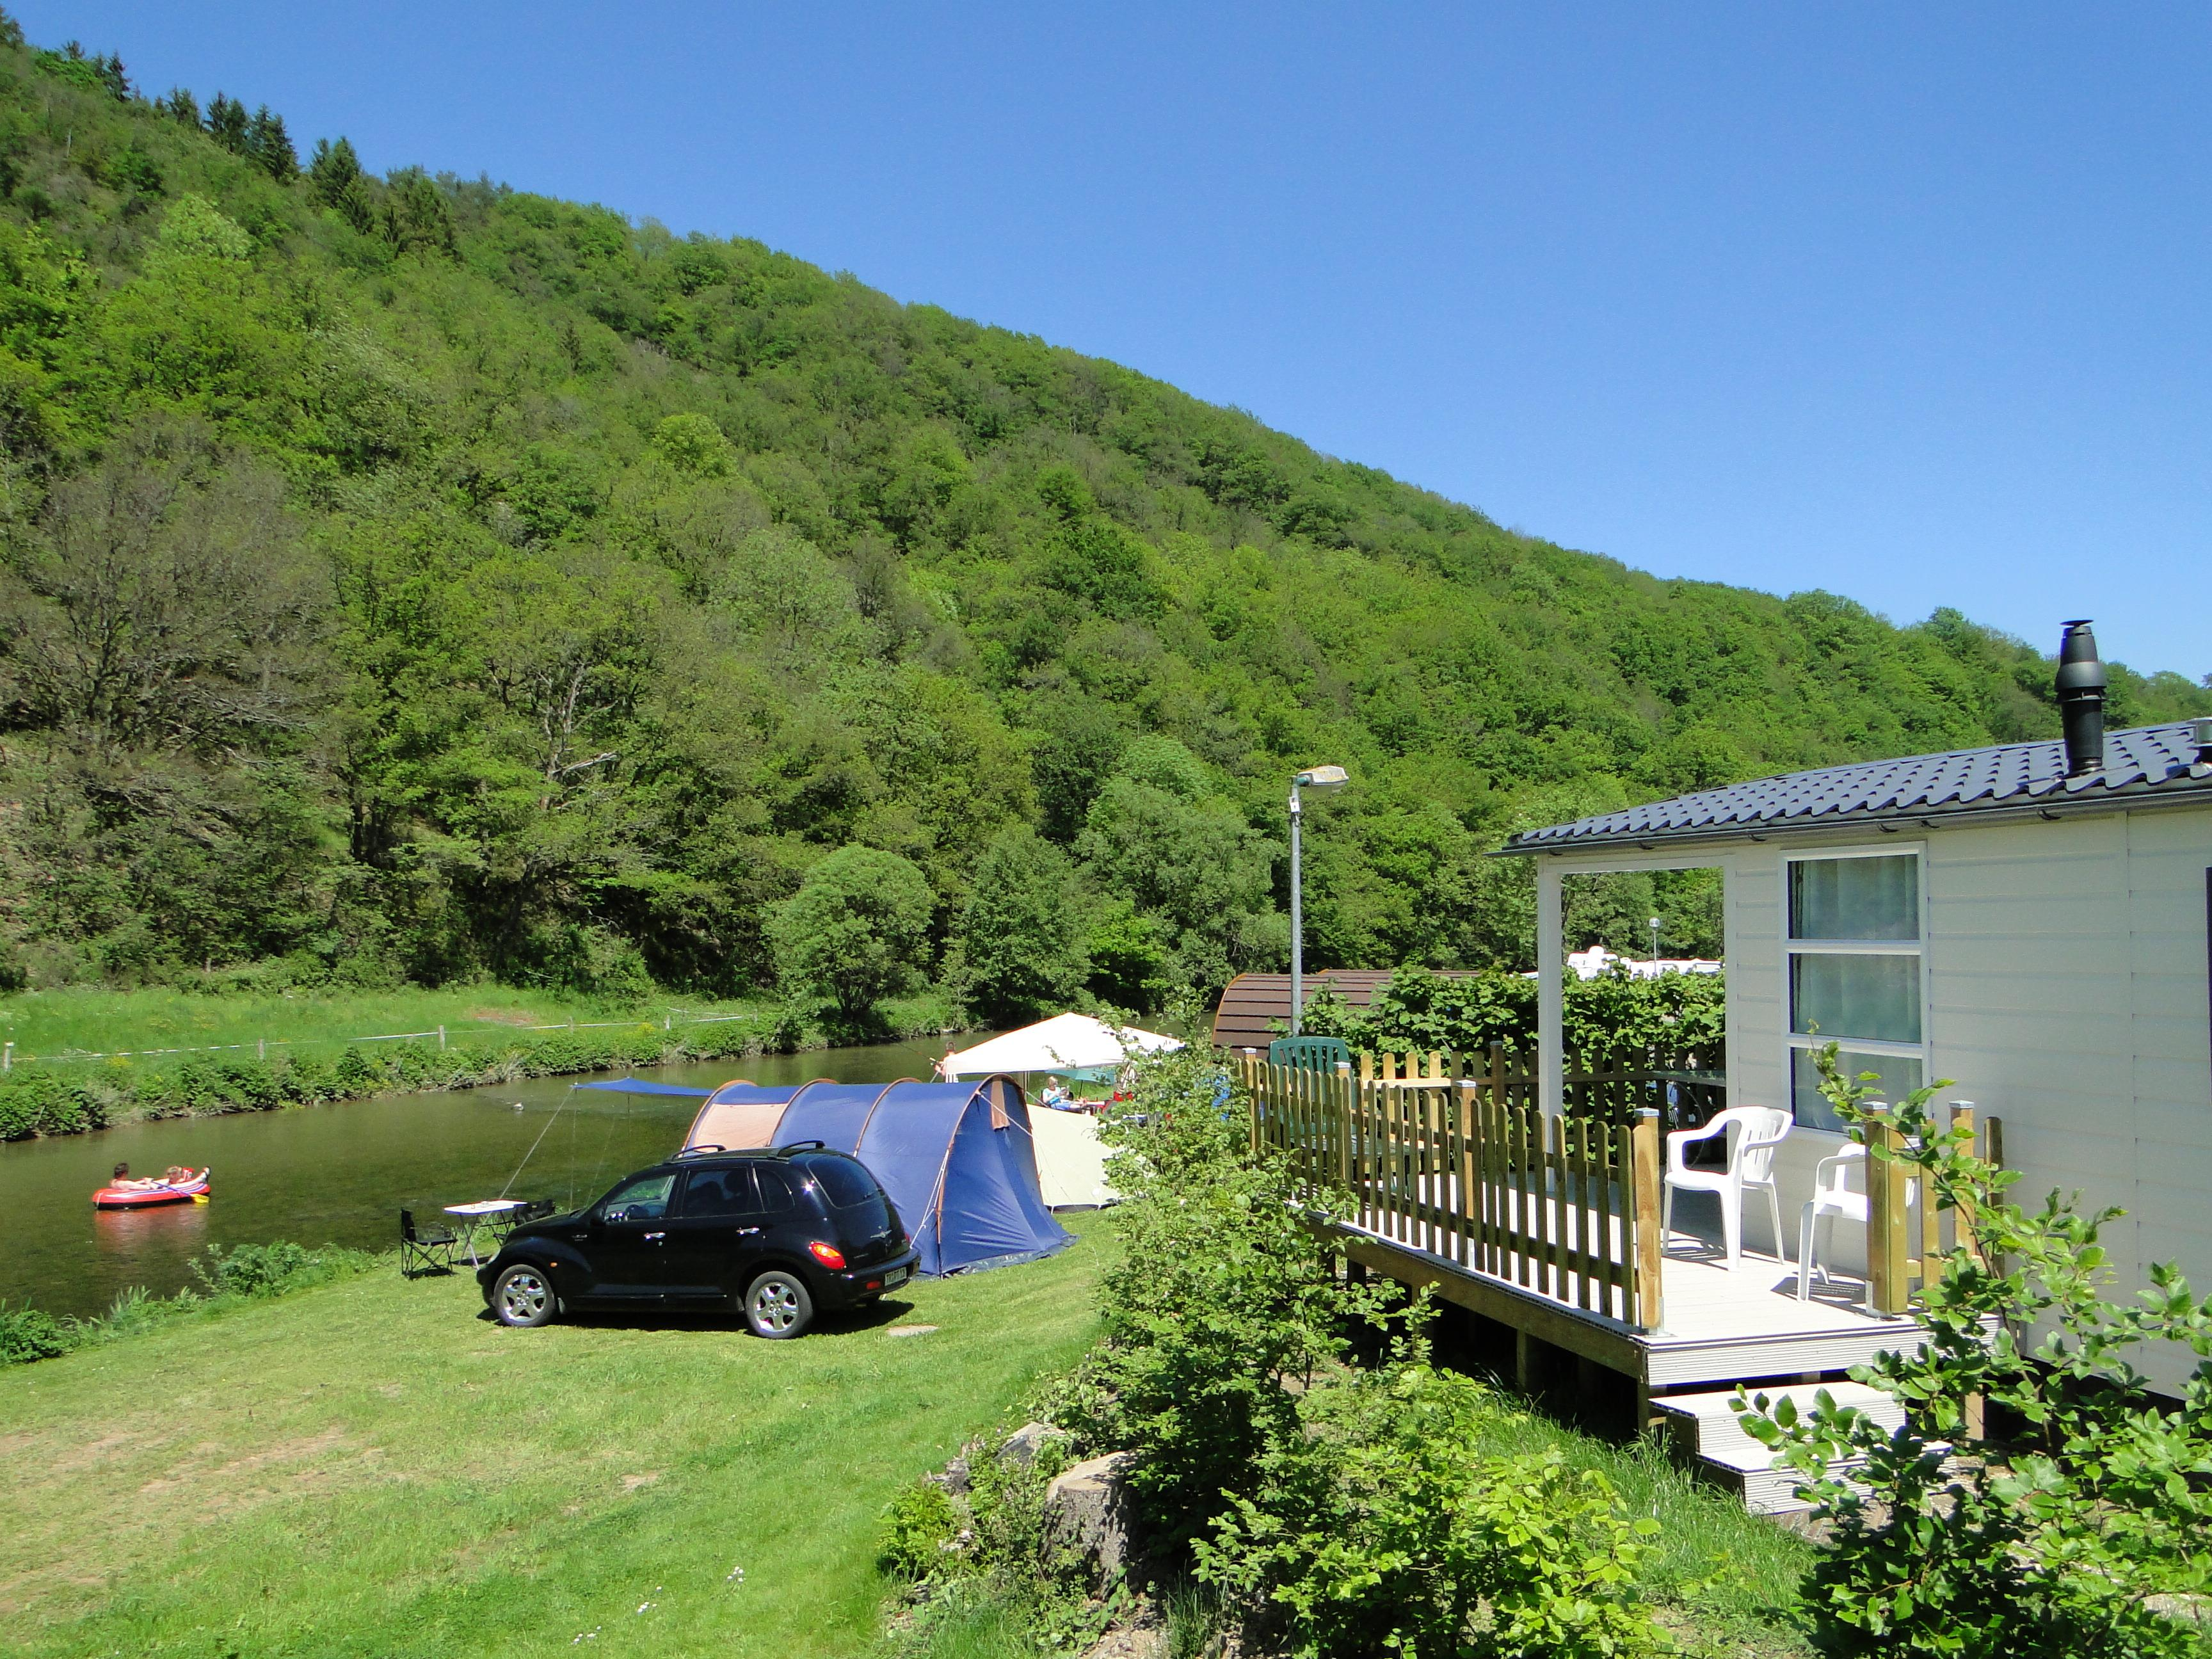 Locatifs - Lodge - Camping Bissen